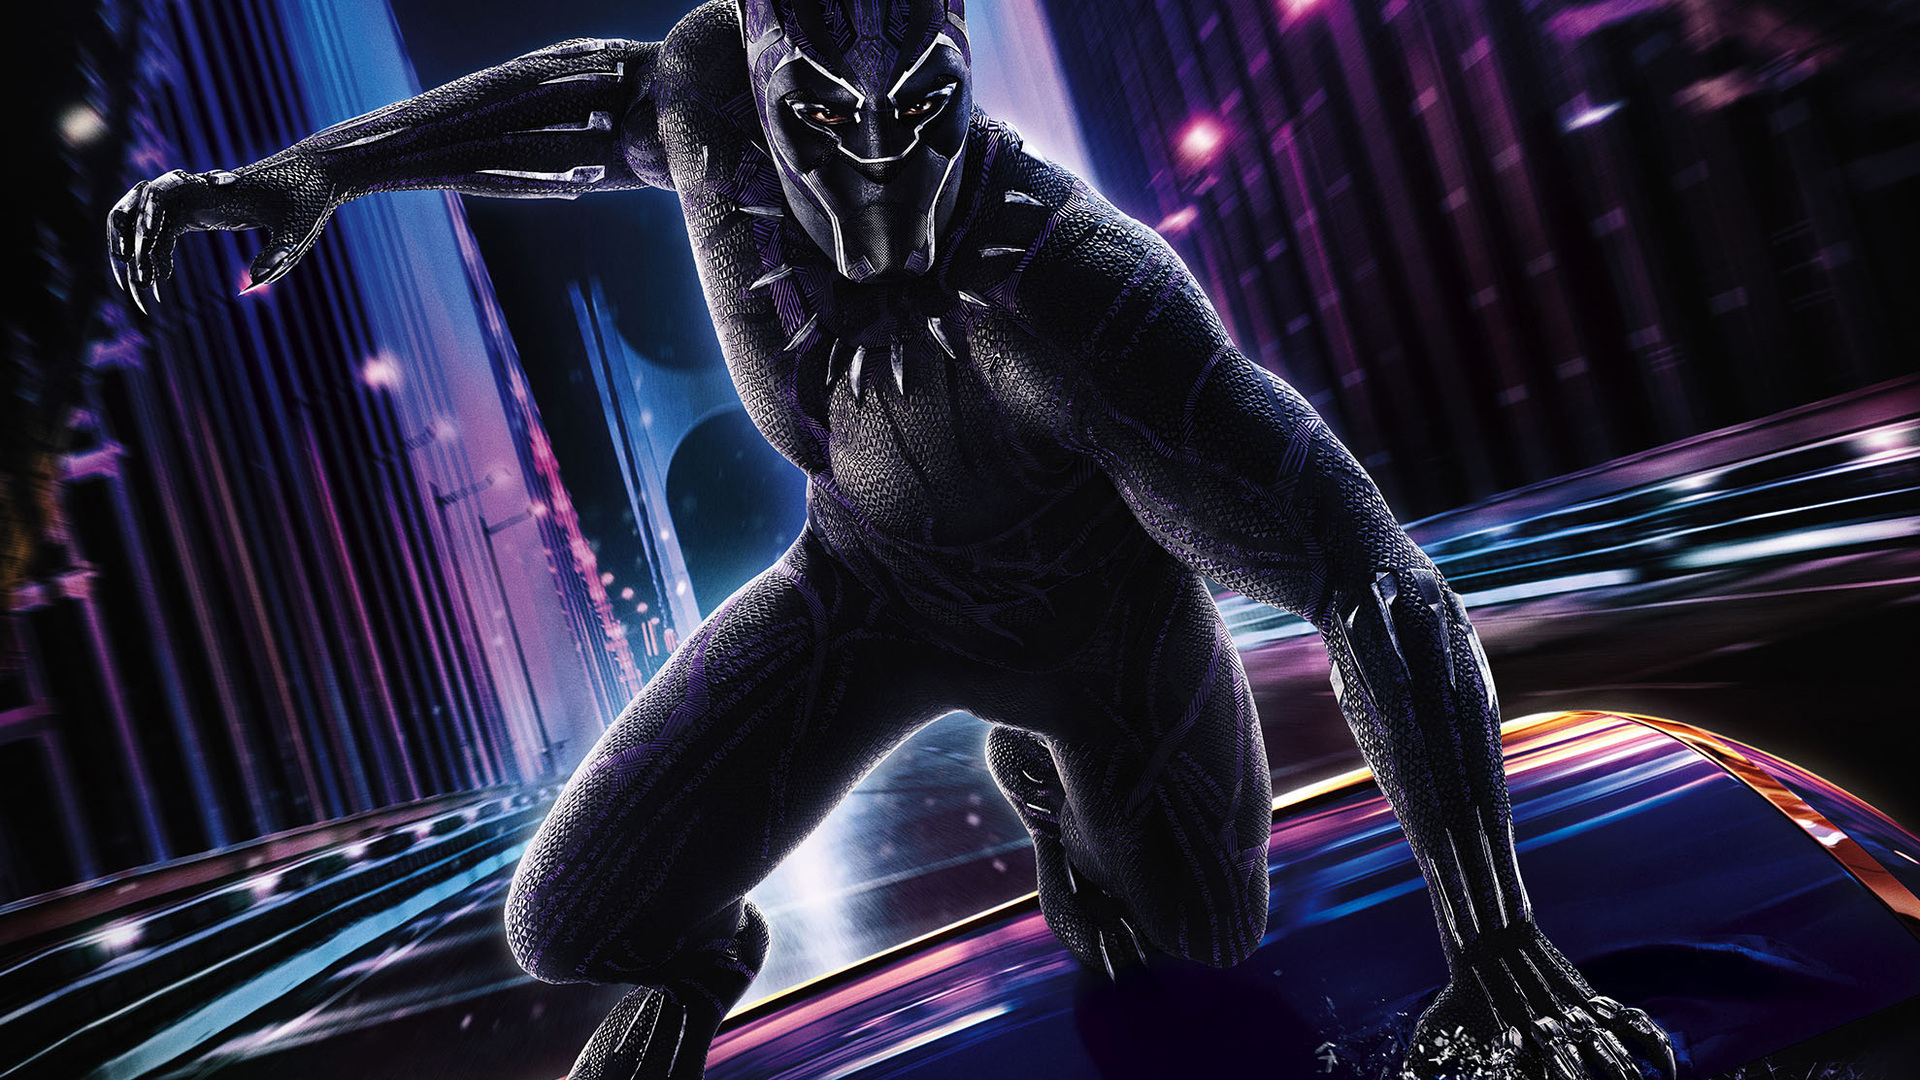 Black Panther 2018 Movie Still Full Hd Wallpaper: 1920x1080 Black Panther 2018 Movie Poster Laptop Full HD